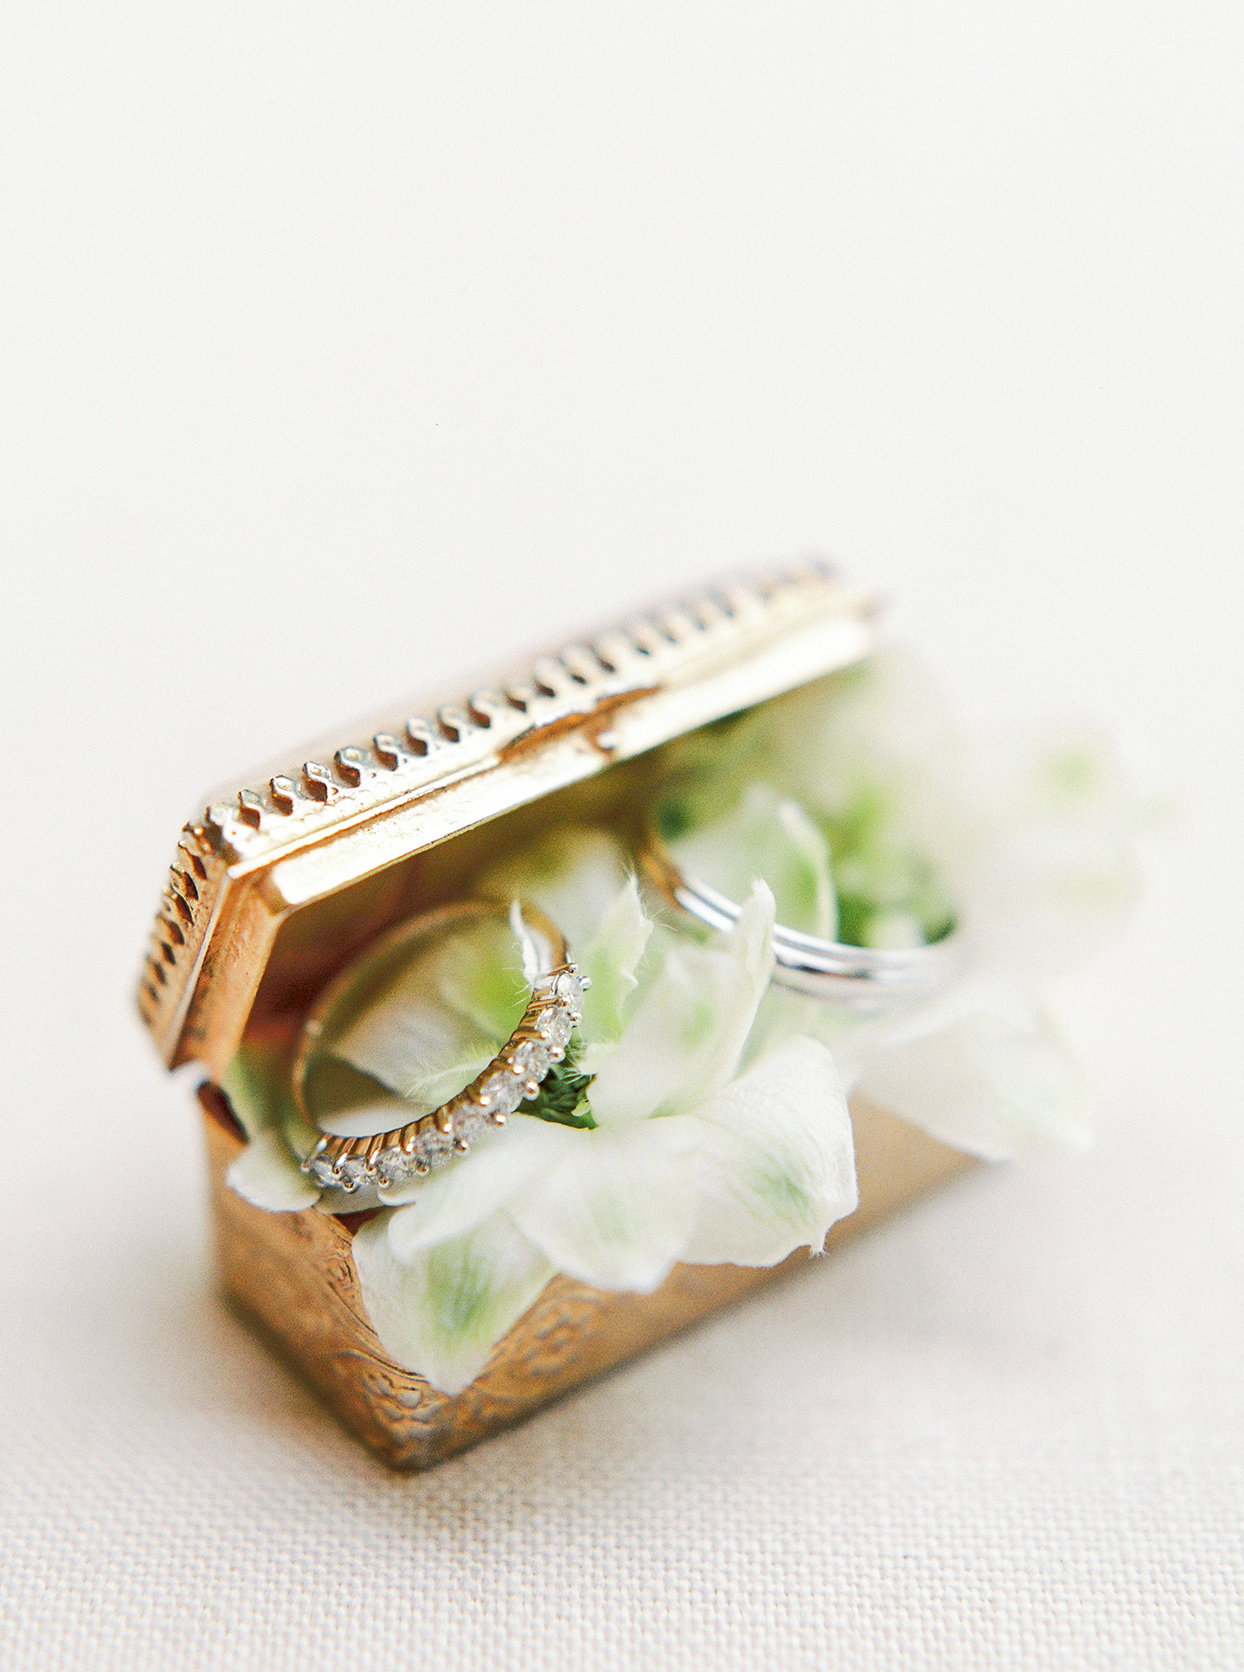 krystyna alexander wedding rings in ornate box